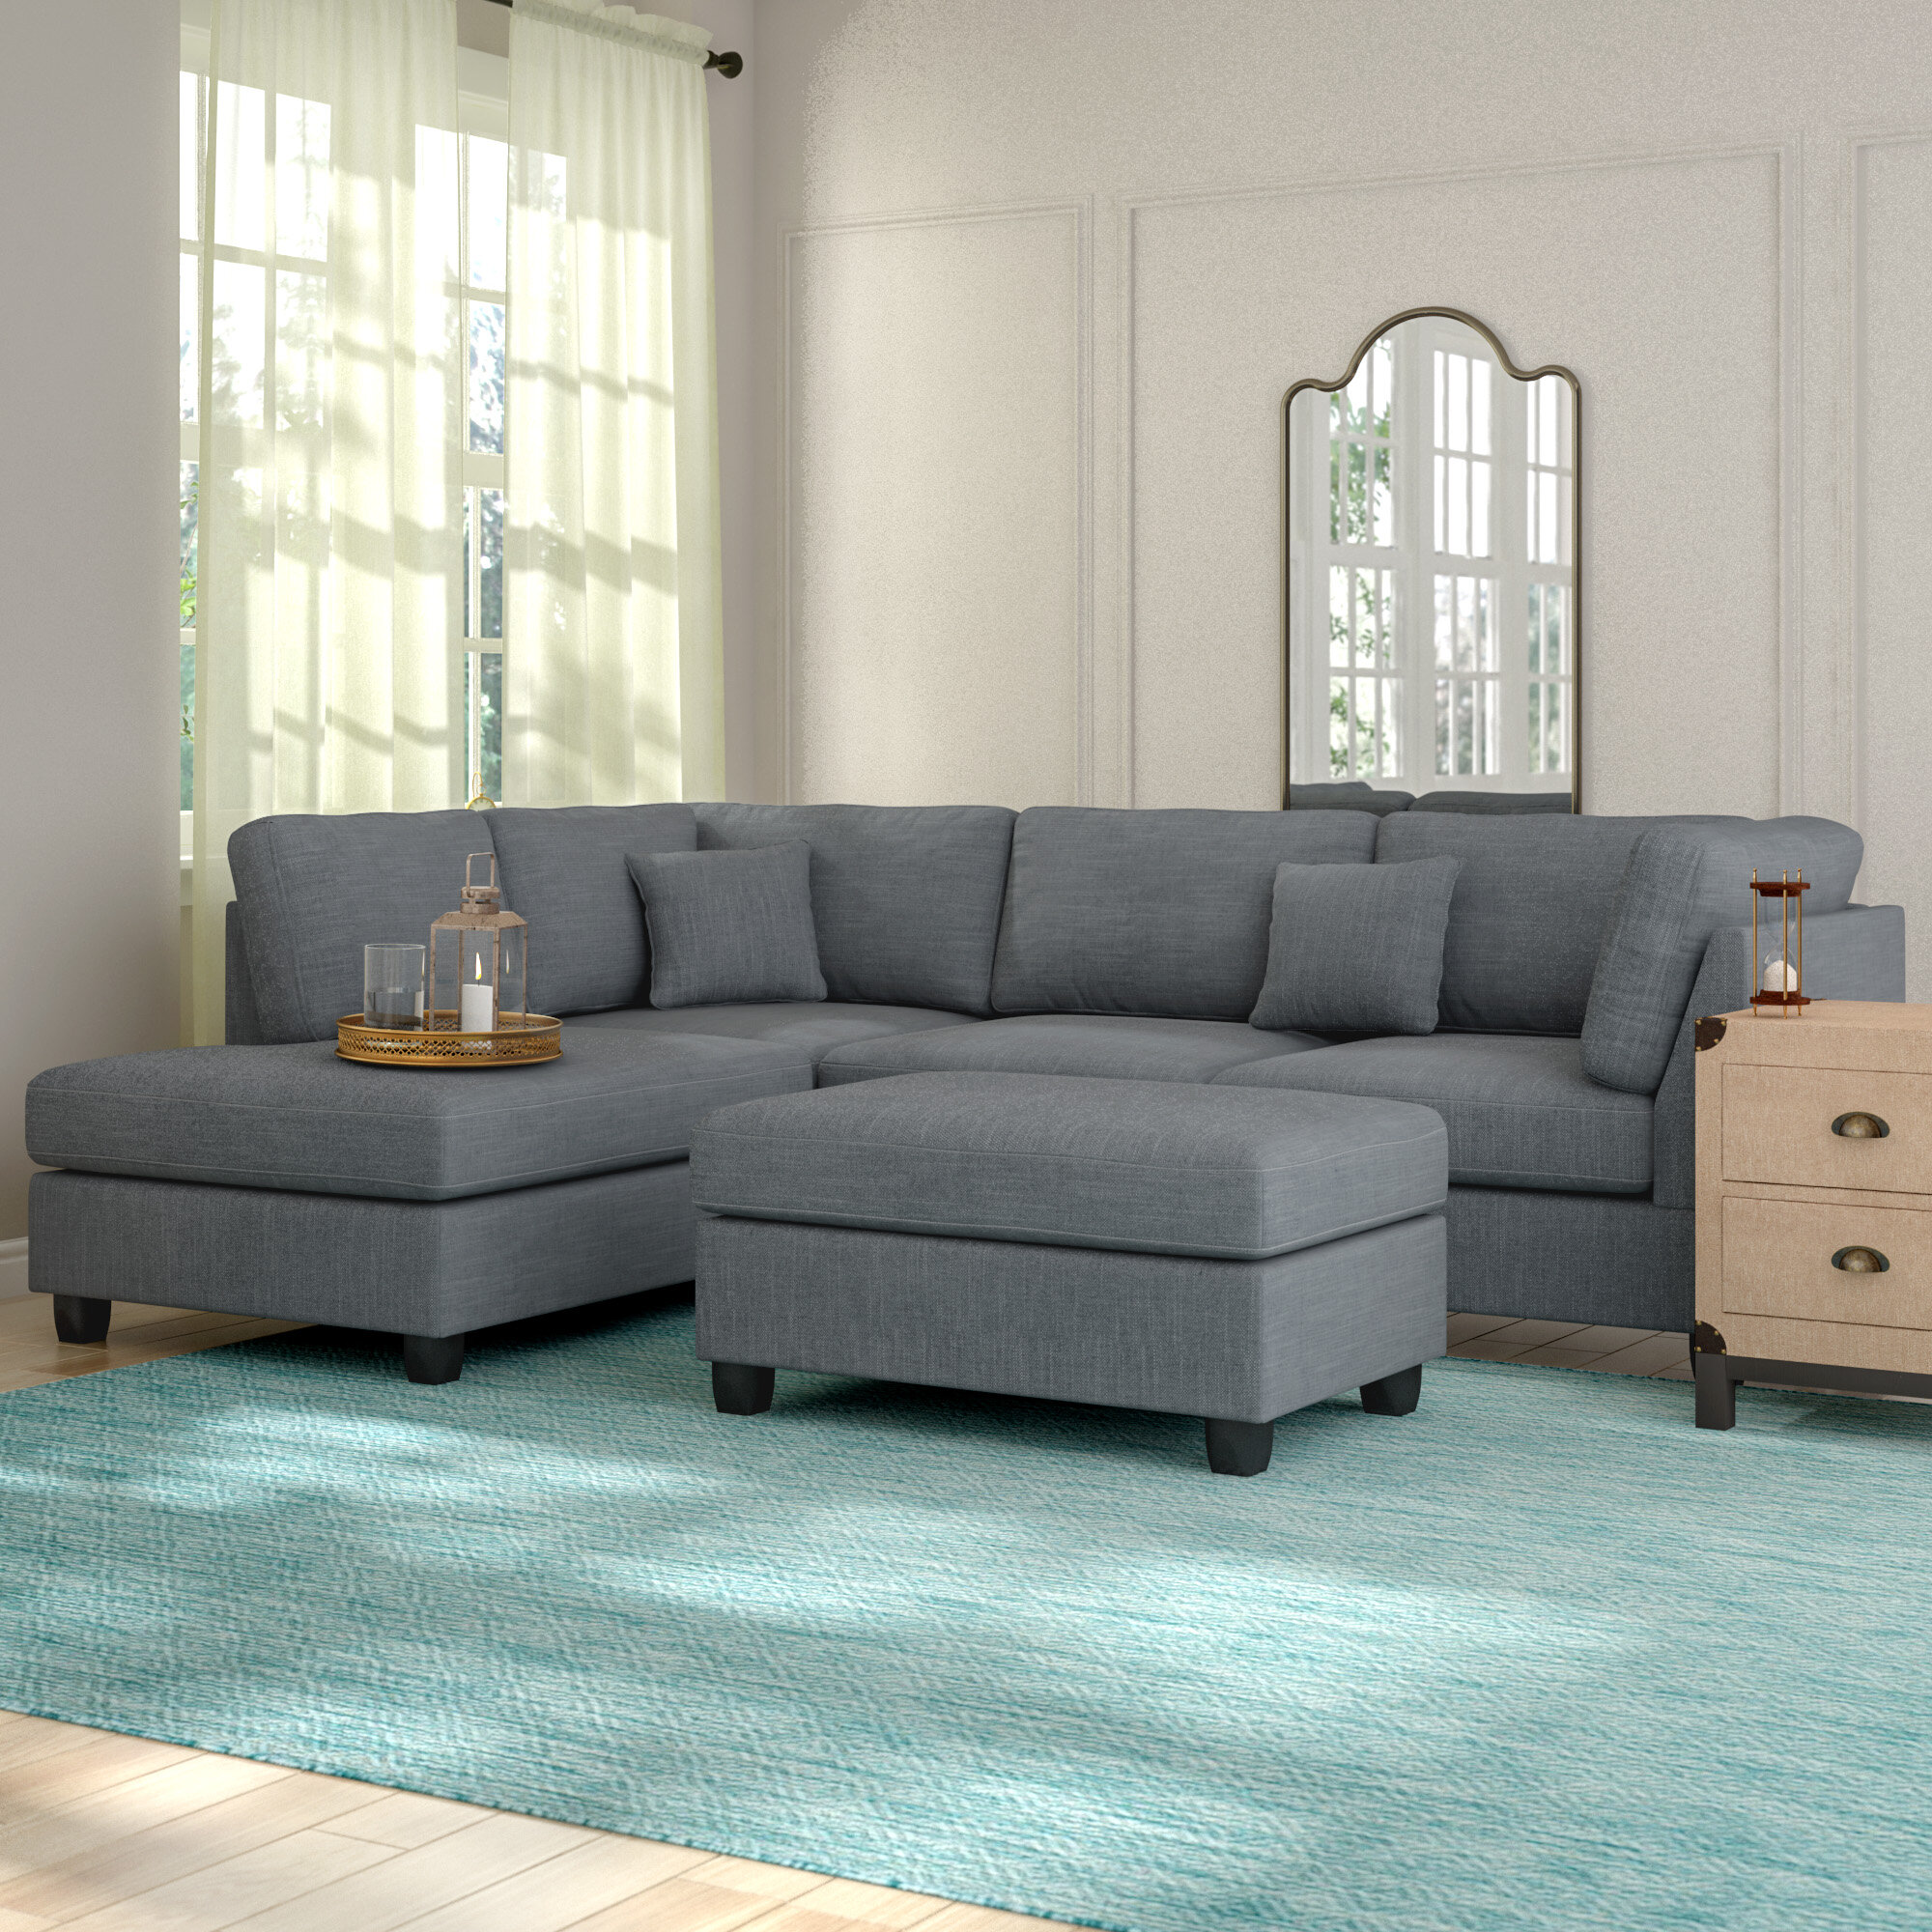 kyle chaise from sofa schuneman reversible grande left gray of products rhino scott fabrics couch choice with chair